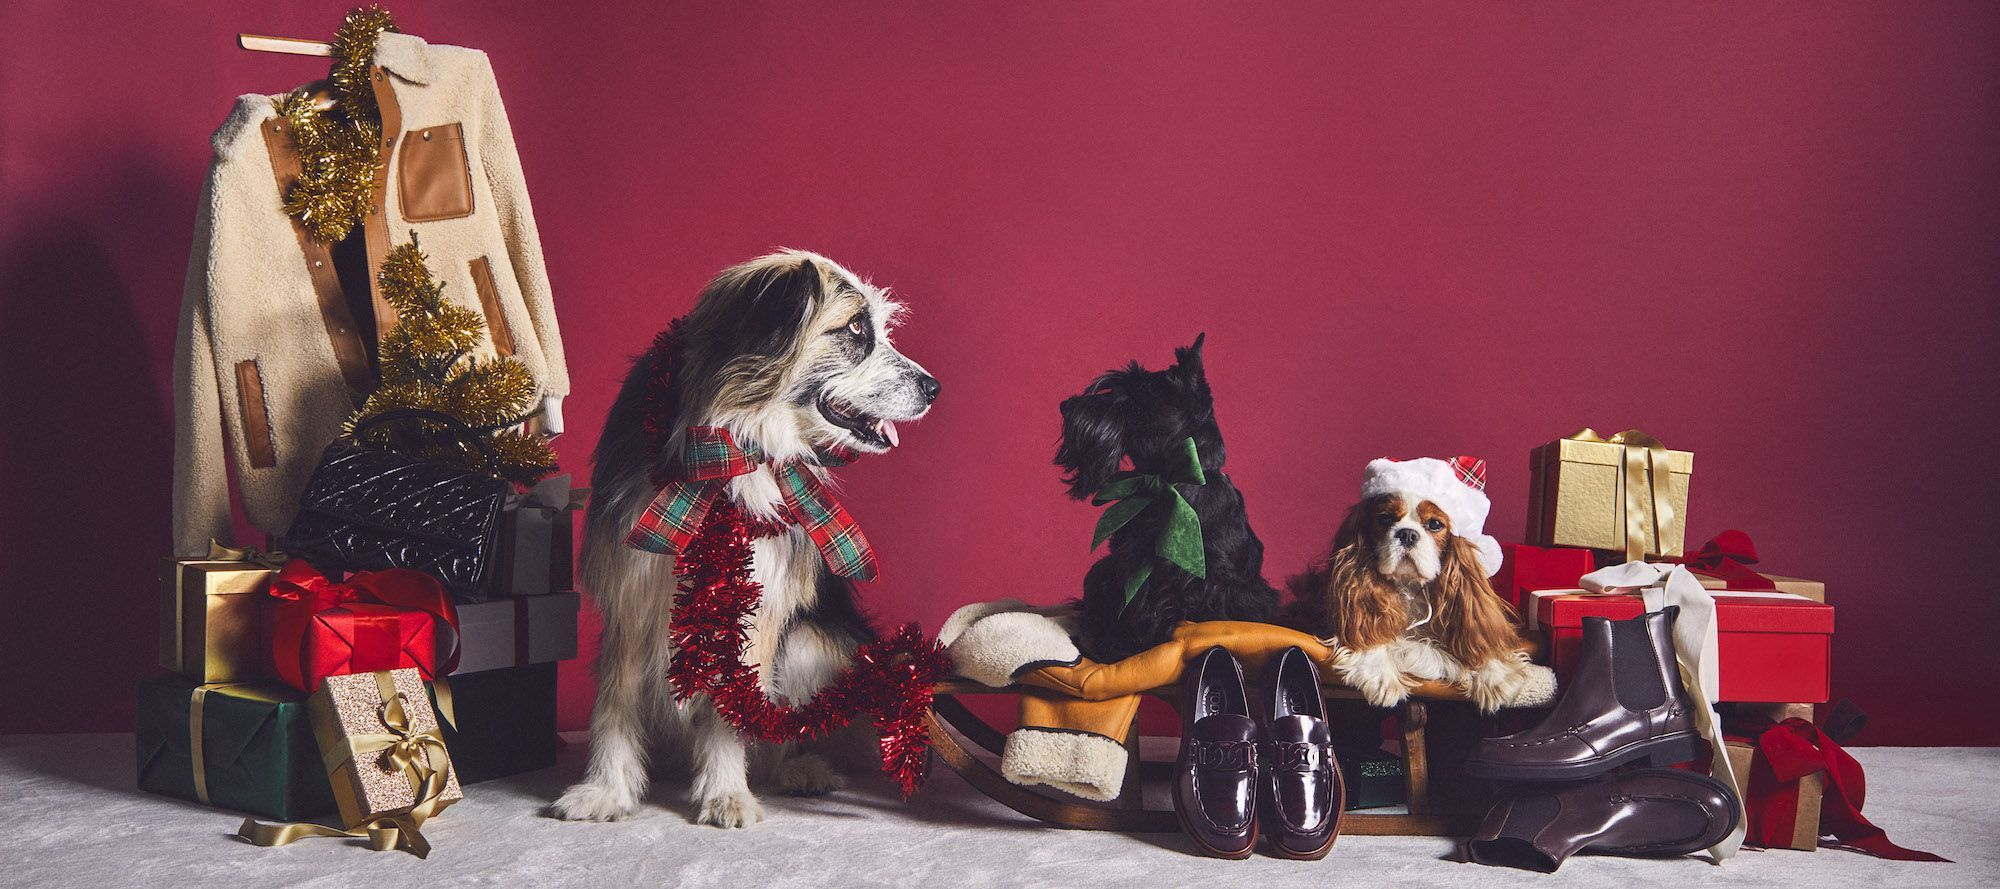 Furry Friends Steal The Spotlight In This Season's Holiday Fashion Campaigns